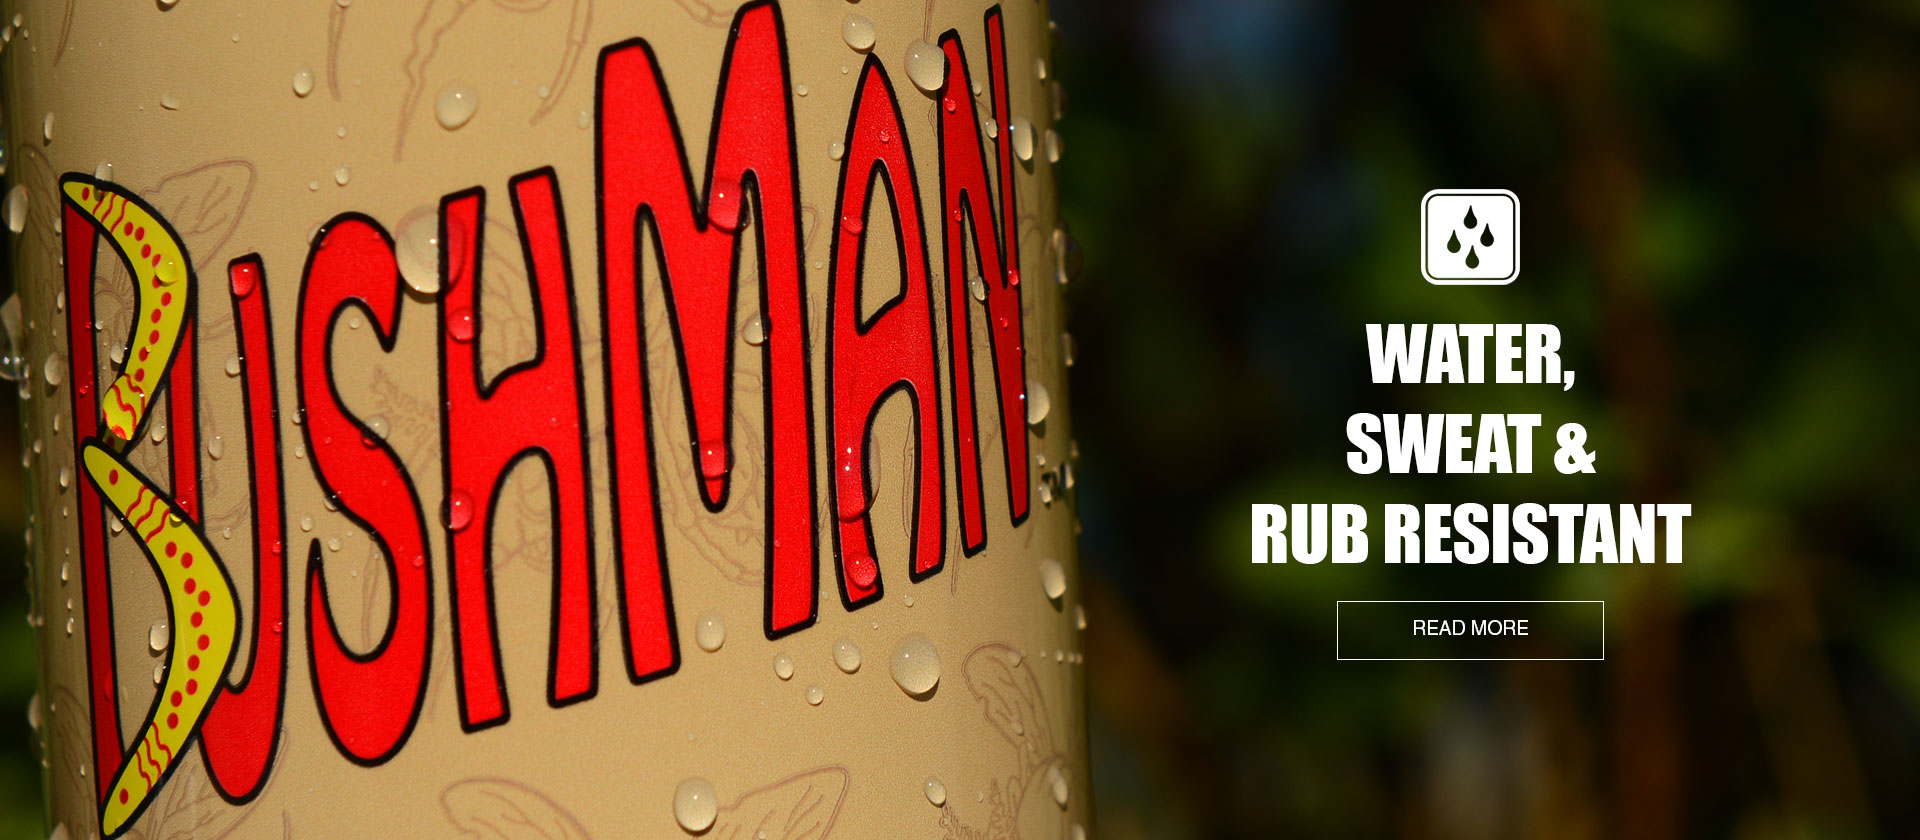 Bushman is water, sweat and rub resistant